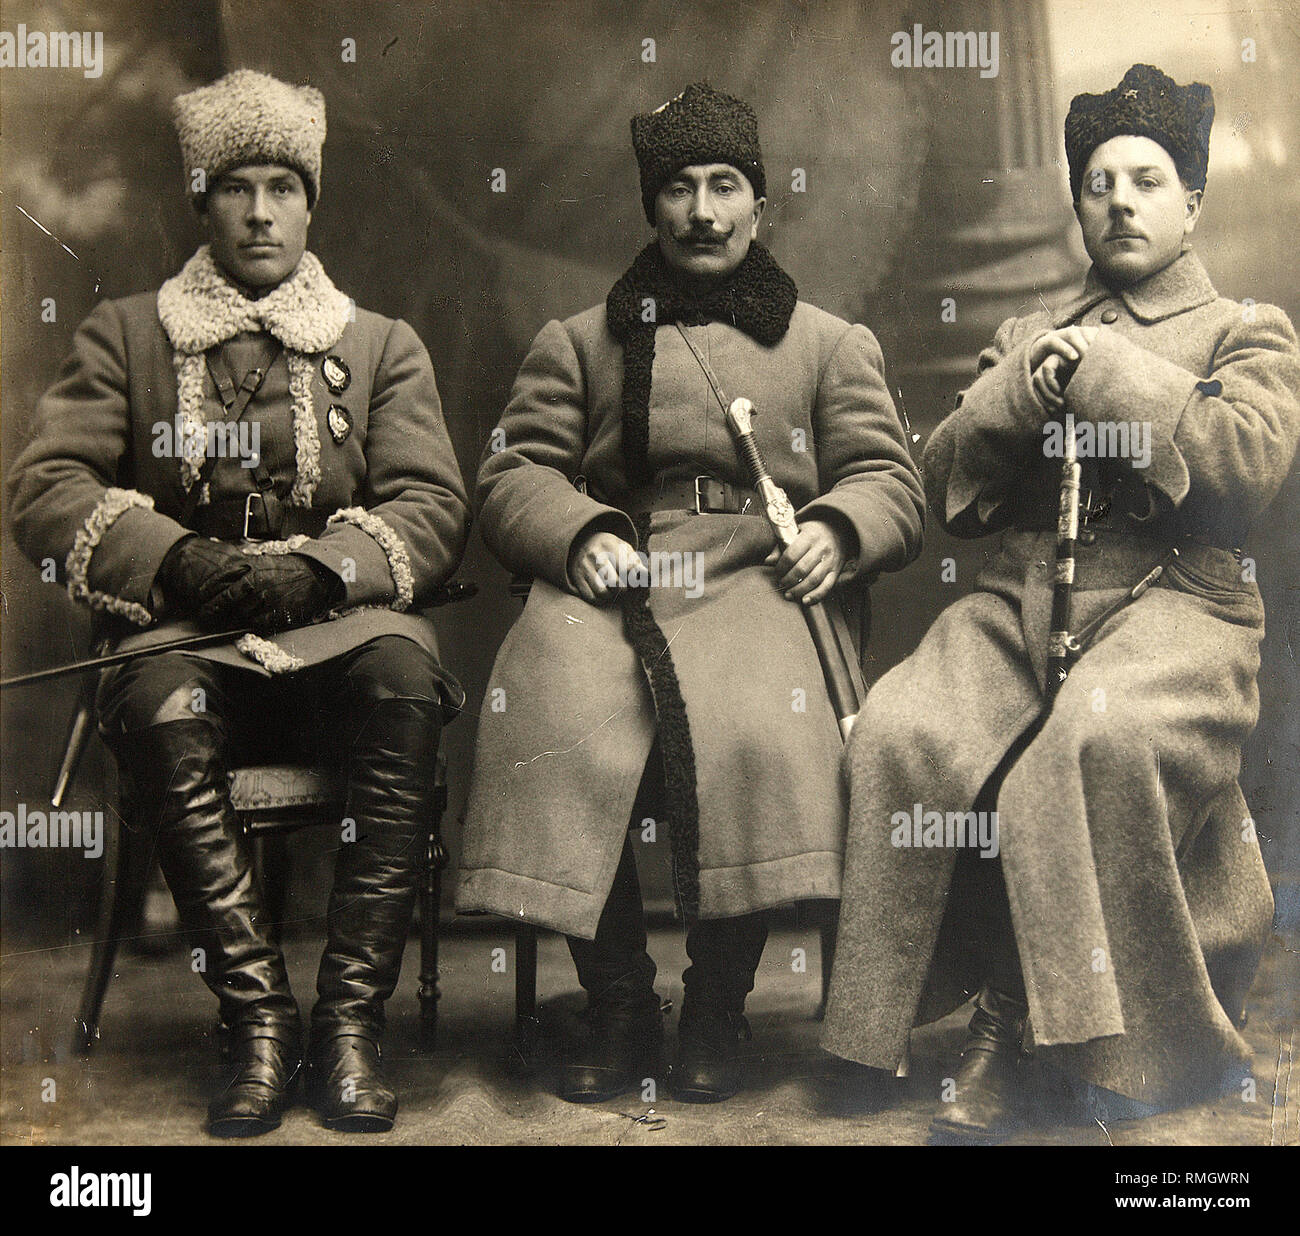 Civil War. Commandants Semyon Timoshenko, Semyon Budyonny and Kliment Voroshilov. Photograph Stock Photo